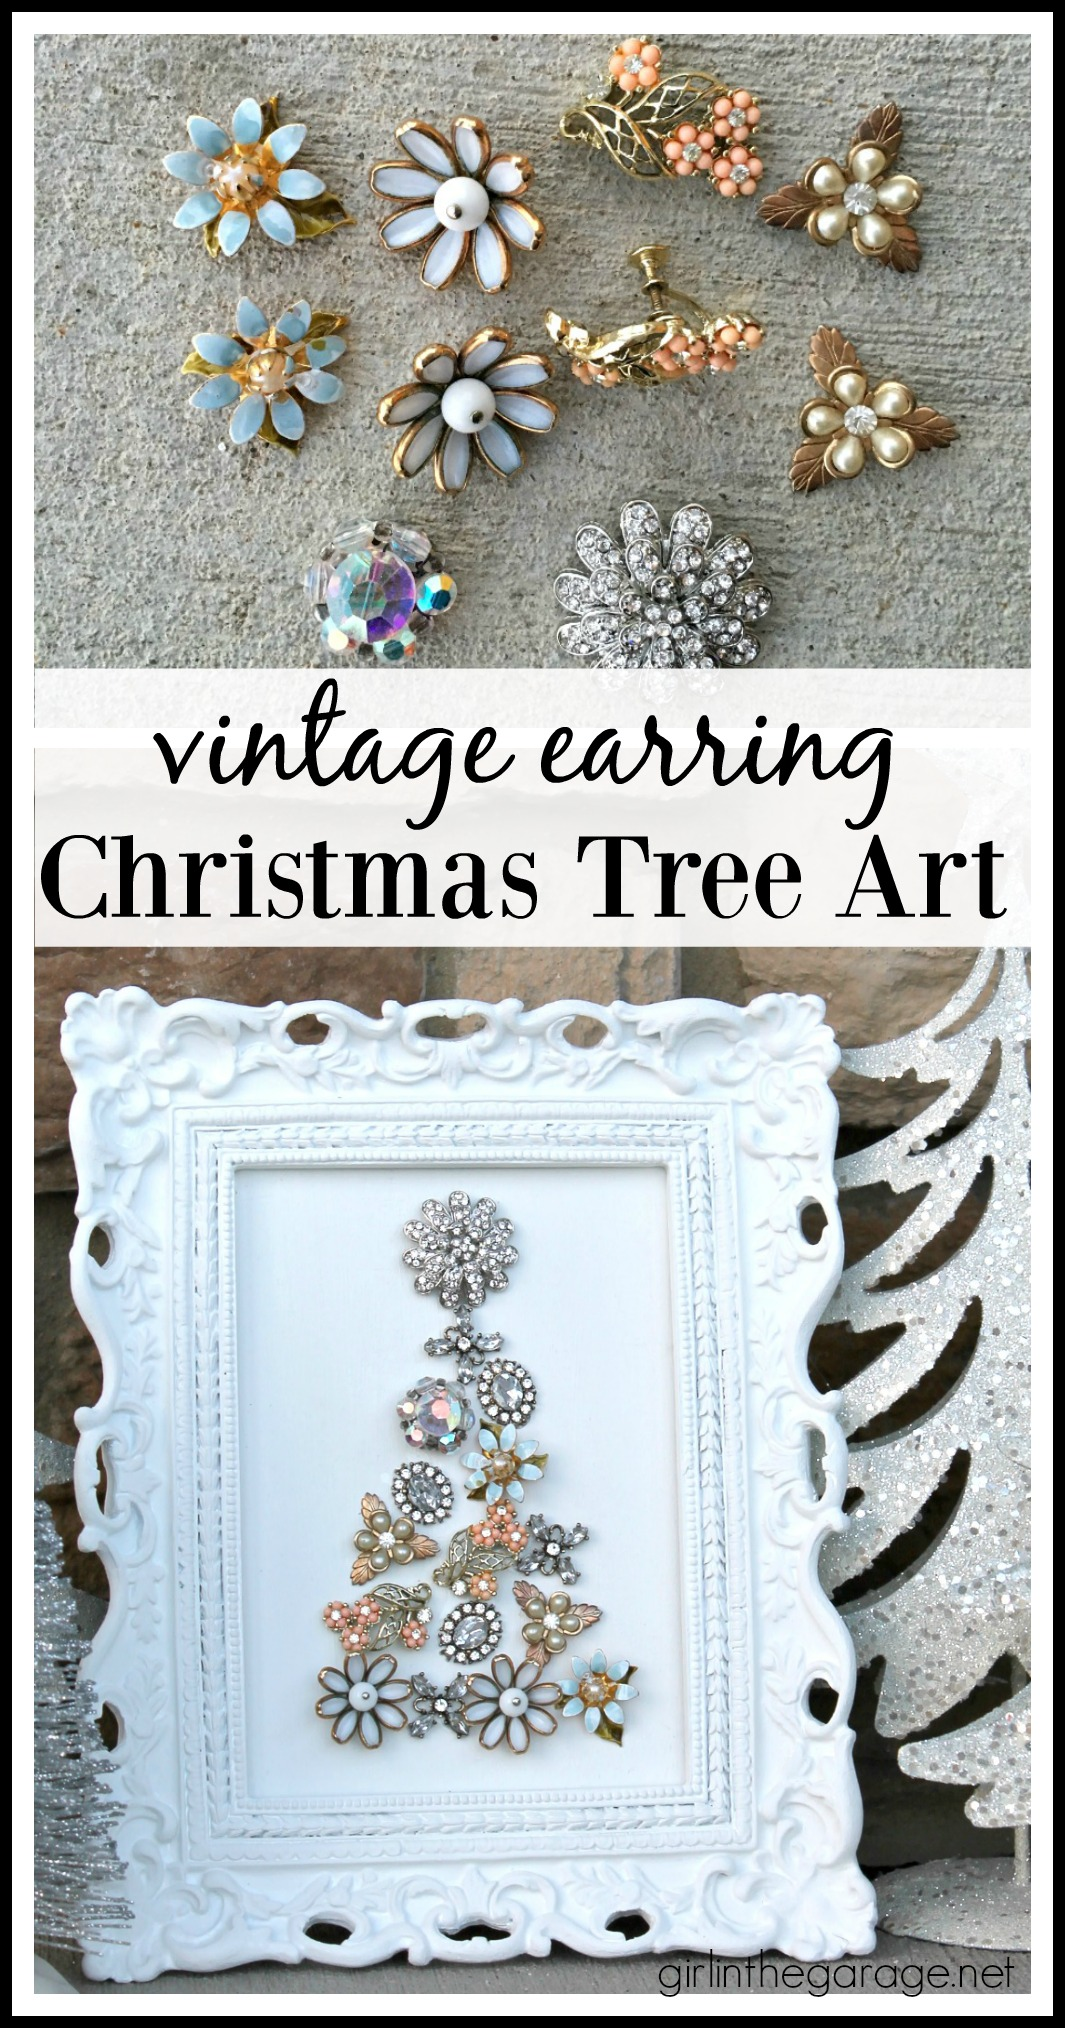 Repurposed vintage earring Christmas tree art - Girl in the Garage